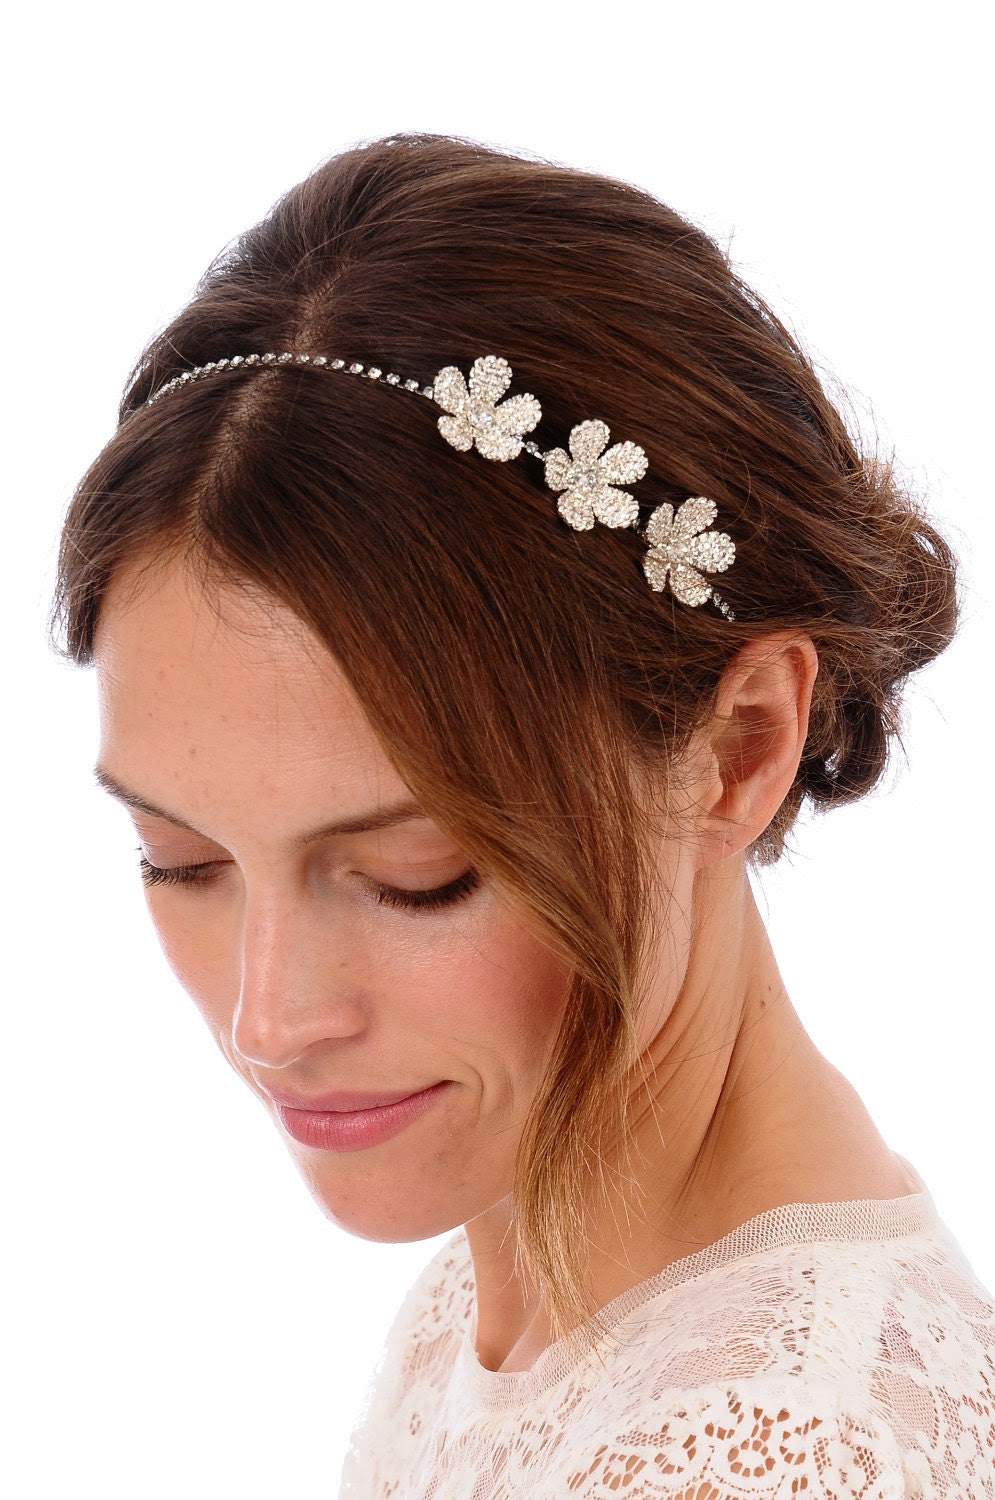 079 - Triple Daisy Flower Headband- Crystal Headband, Rhinestone Headband, Wedding Headband, Bridal Headband, Wedding Headpiece